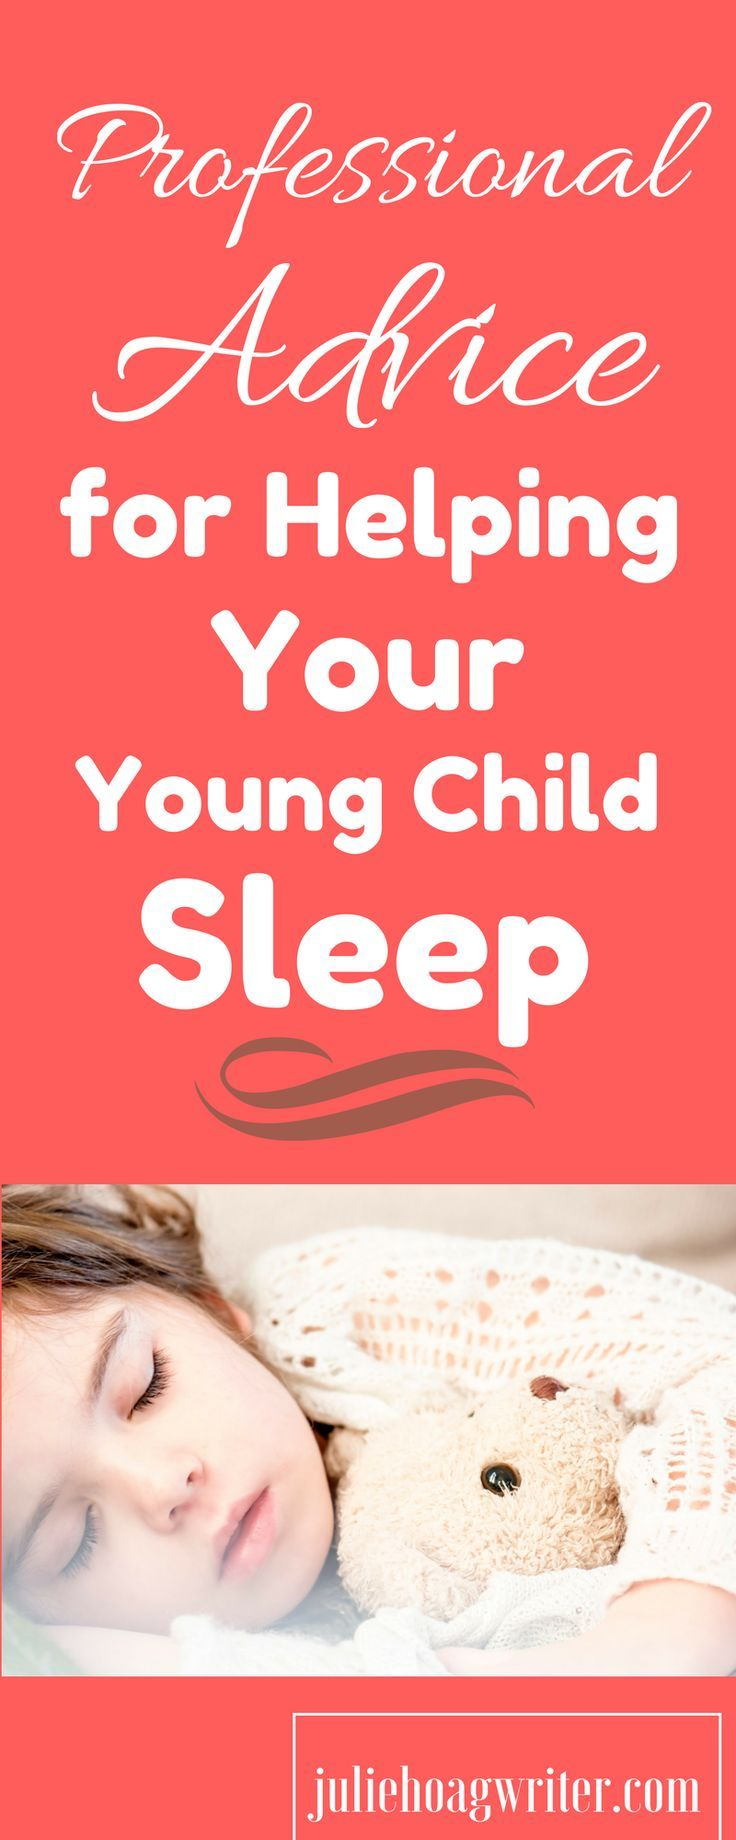 Professional Advice from a Maternal and Child Sleep Consultant for helping young children sleep. Tips for parents to help ensure good healthy sleep for their kids. This is the 9th installment in my Children's Healthcare Series. Affiliate links.